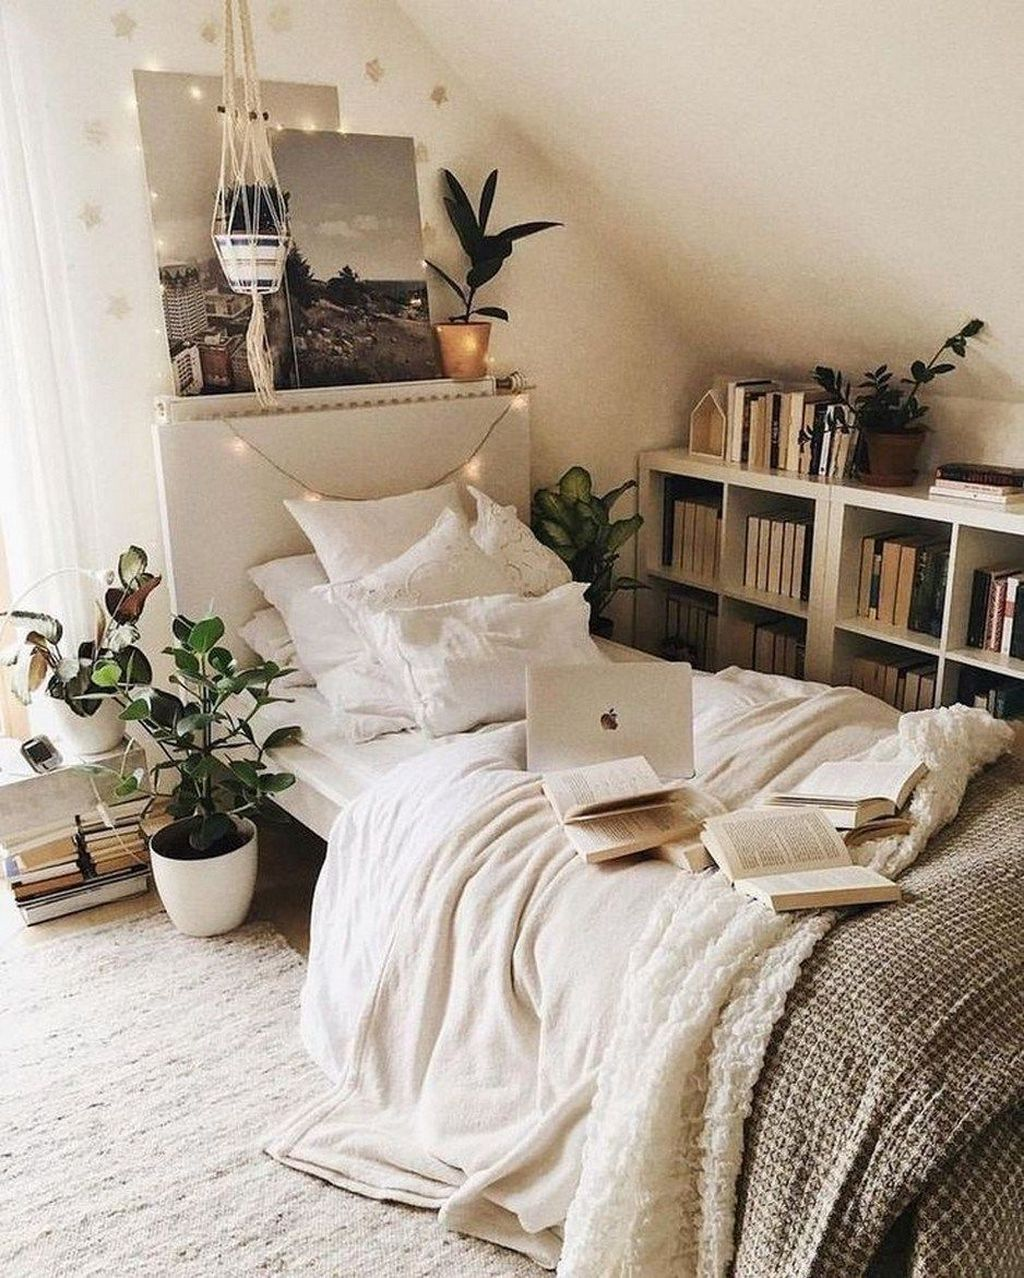 Bedrooms And More